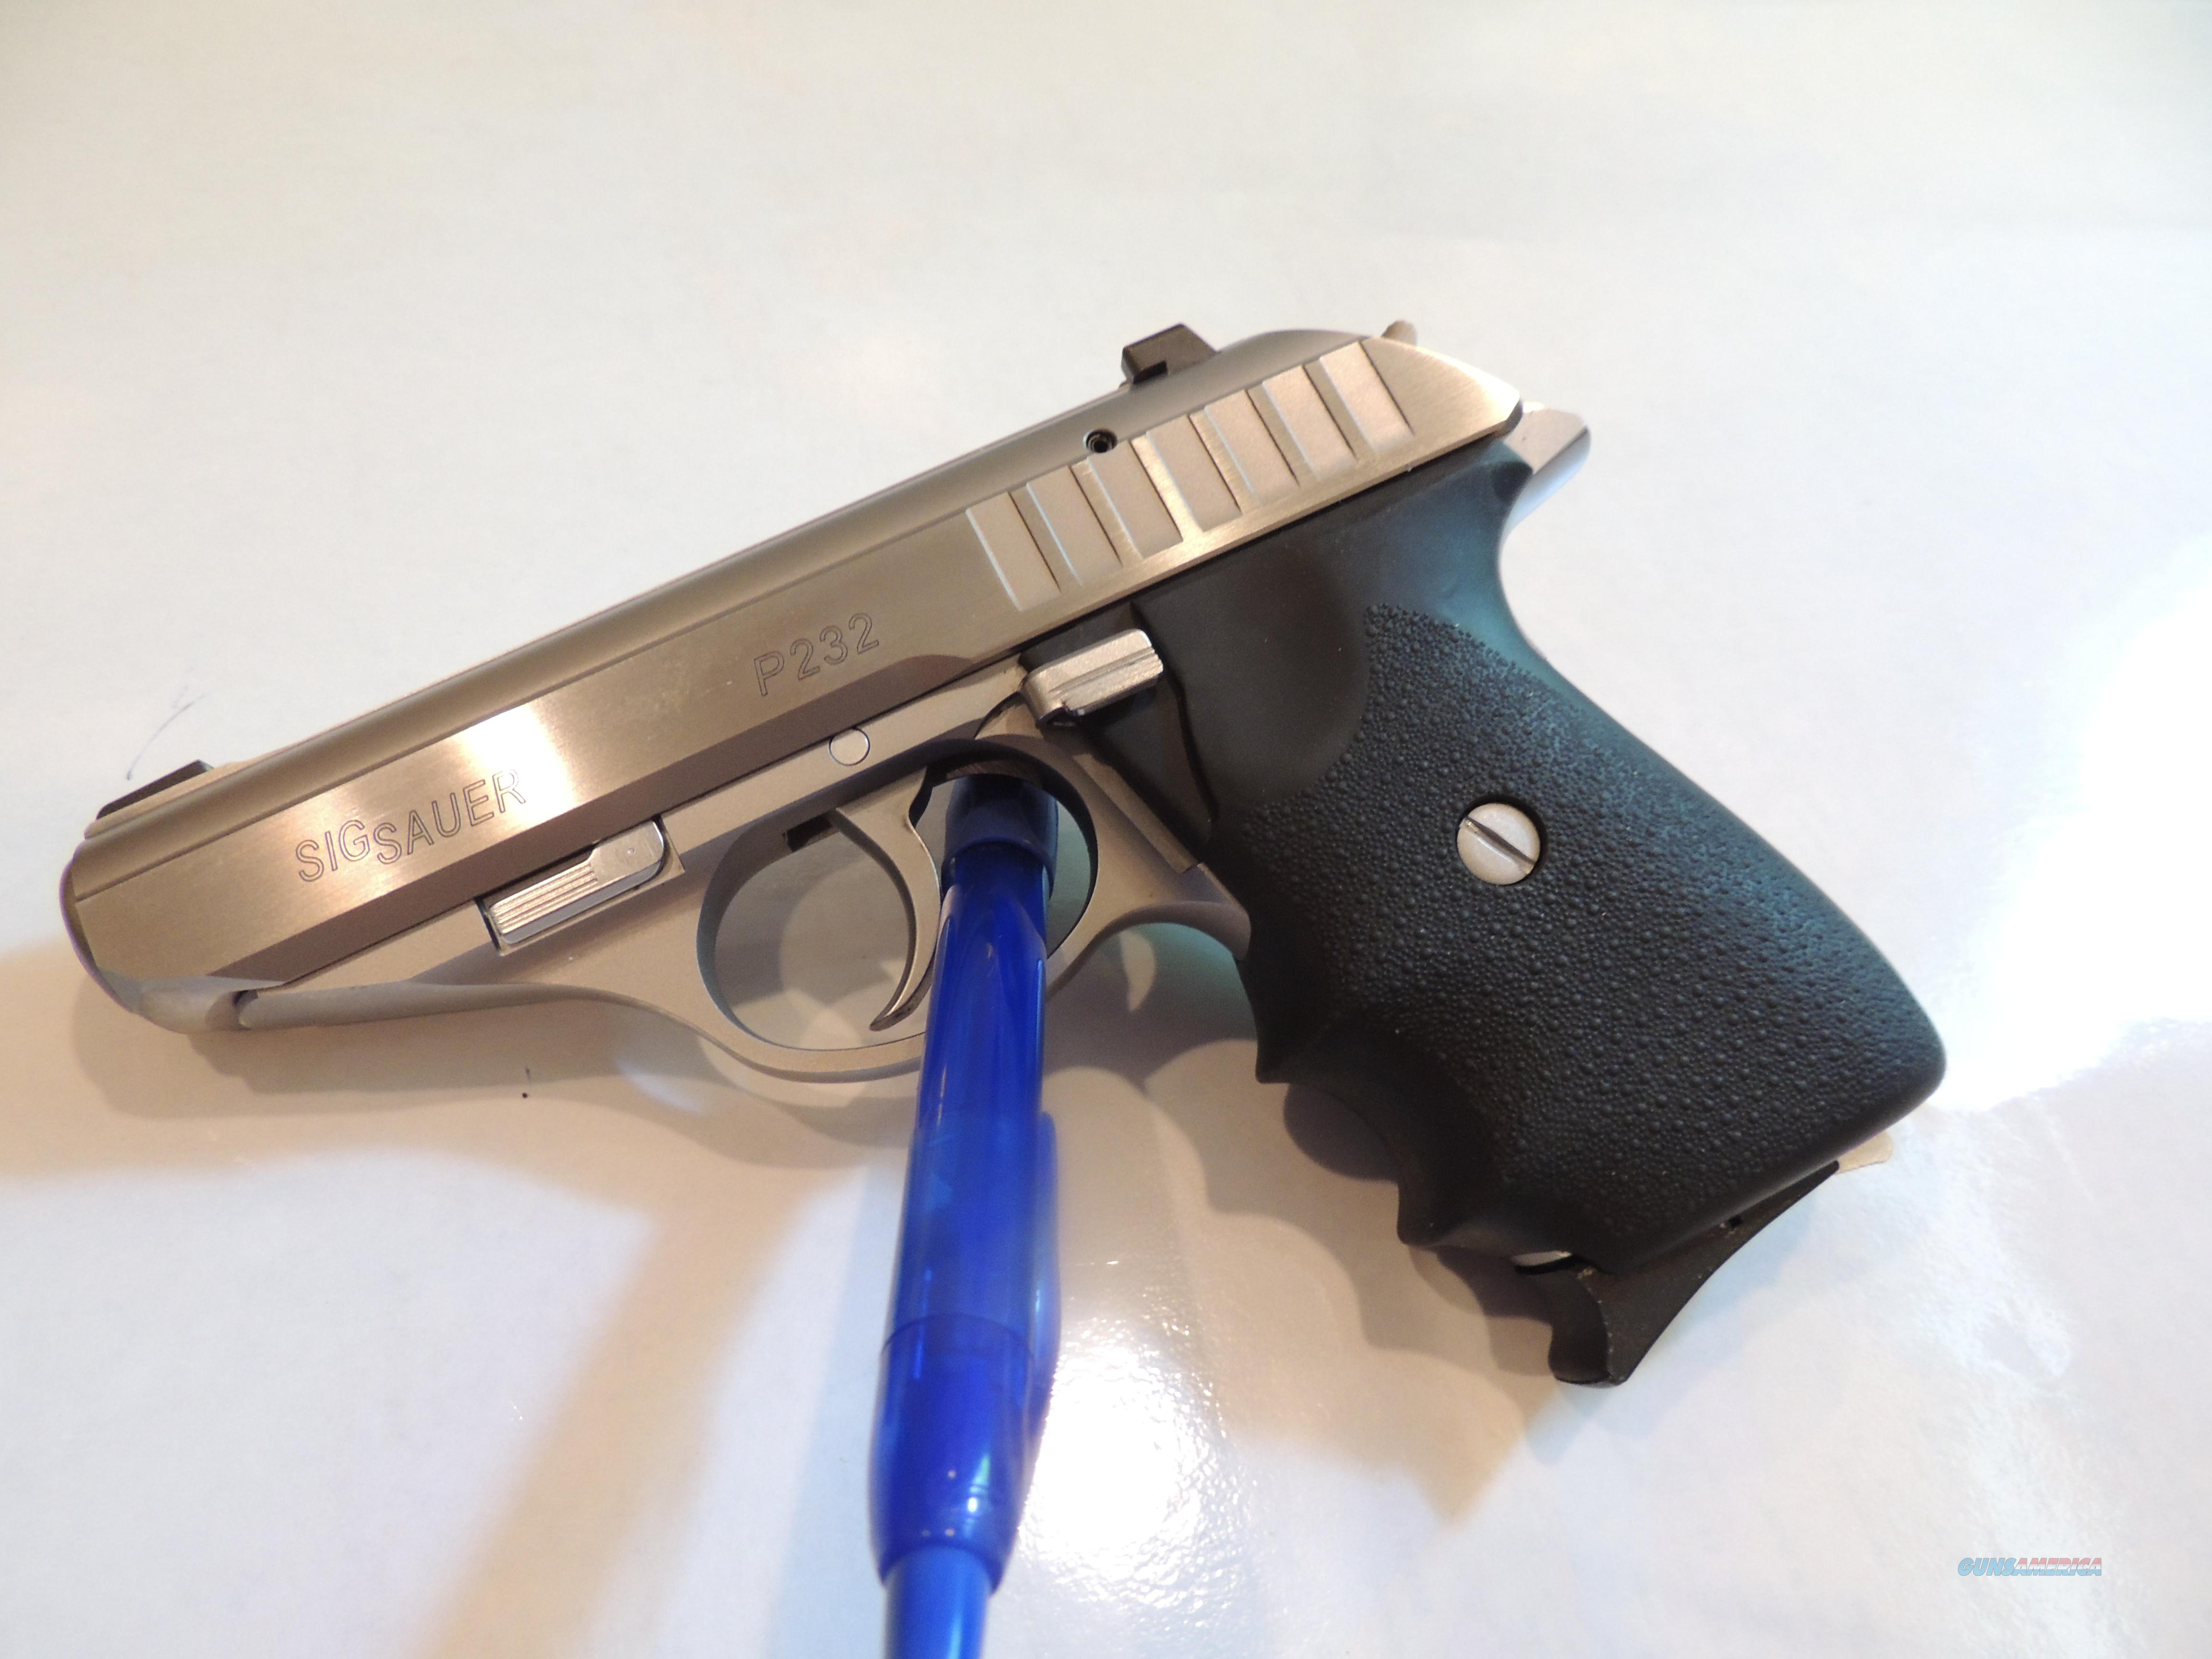 sig sauer p232 made in germany 9mm kurz 3 for sale